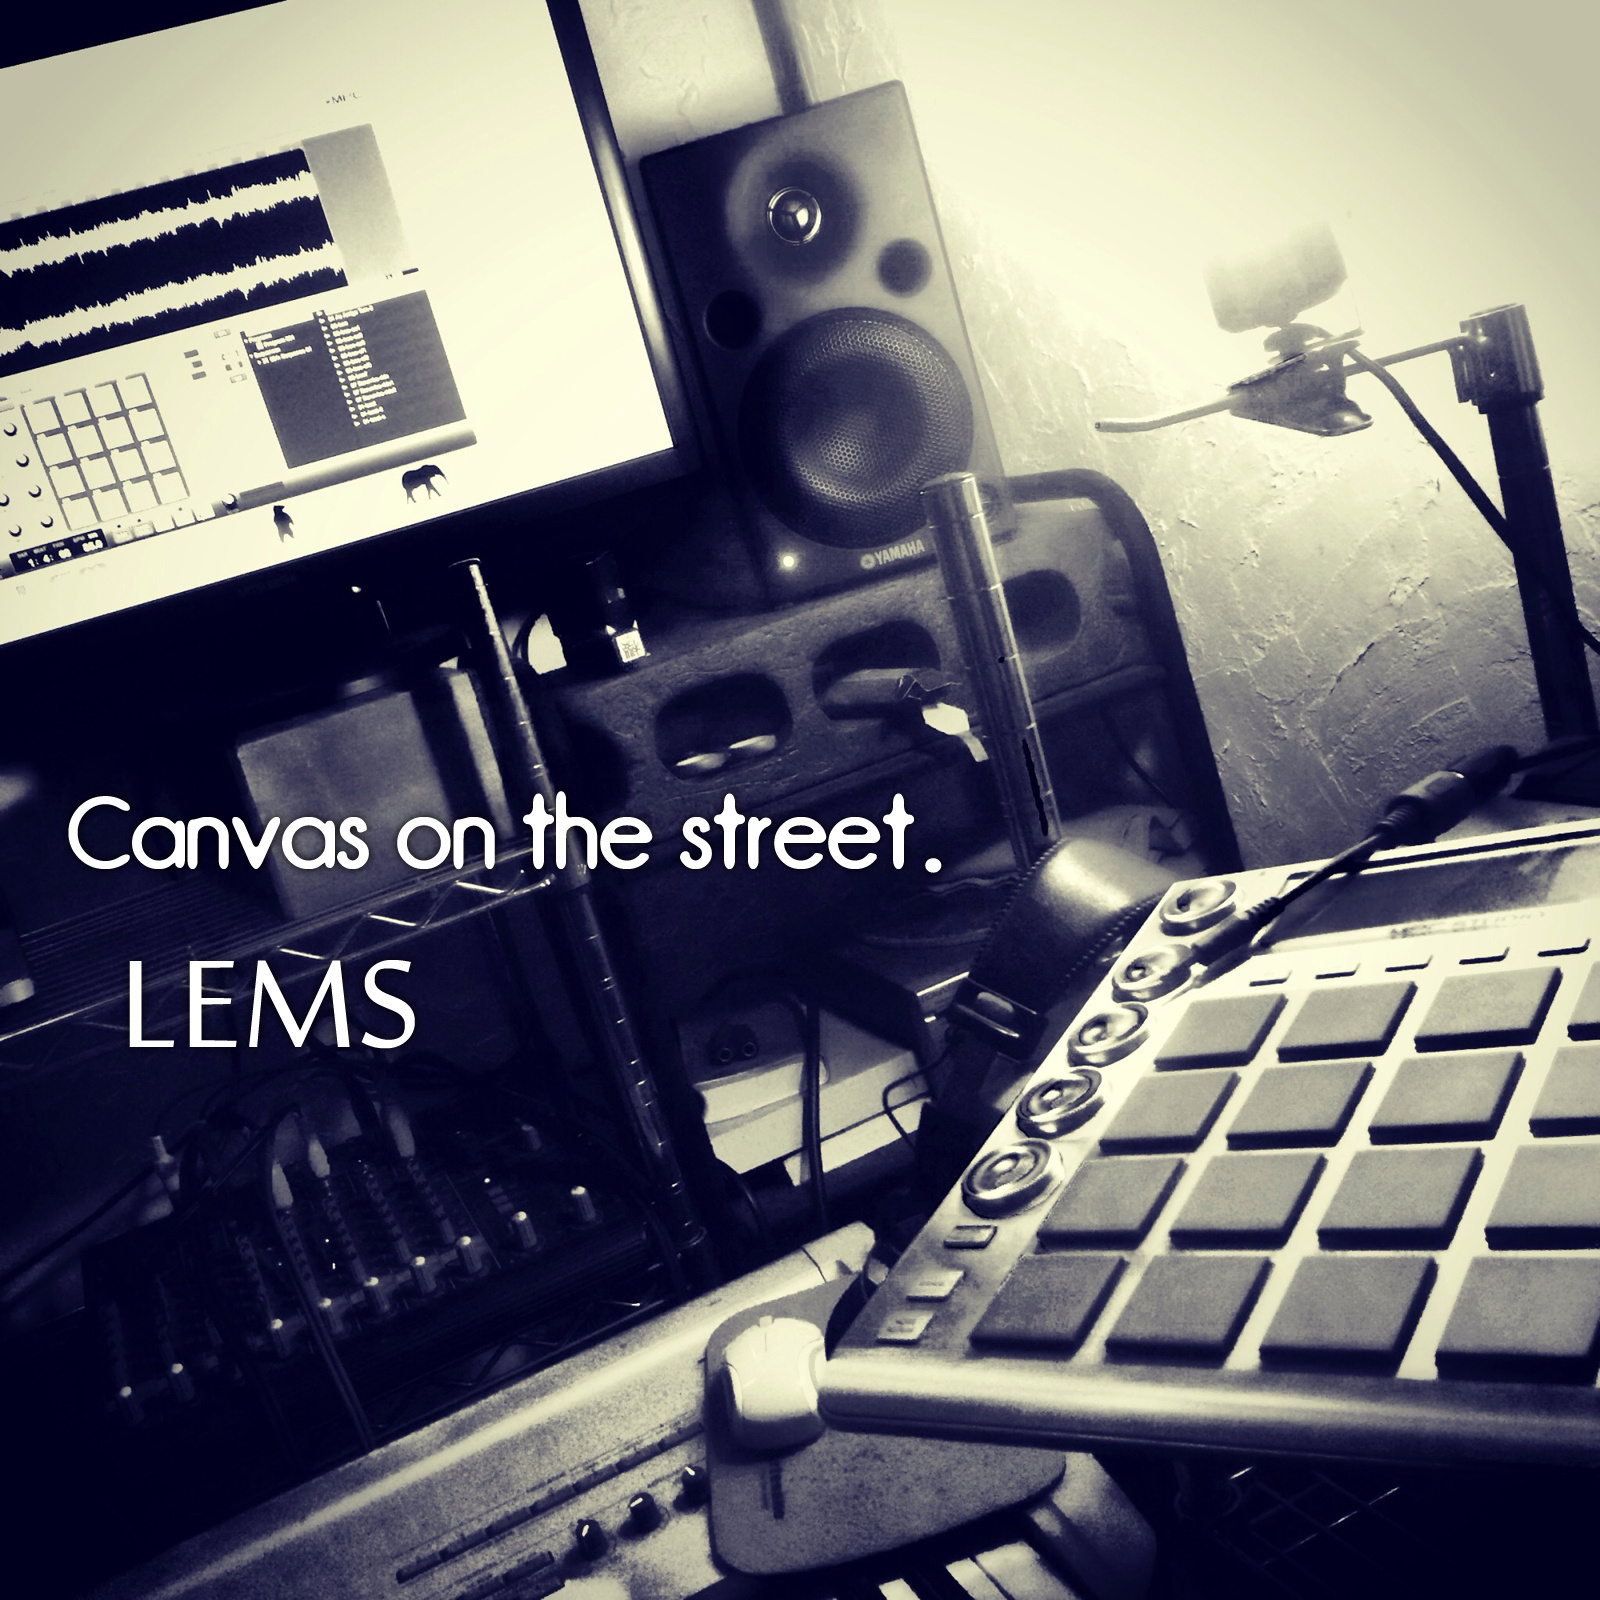 LEMS- Canvas on the street